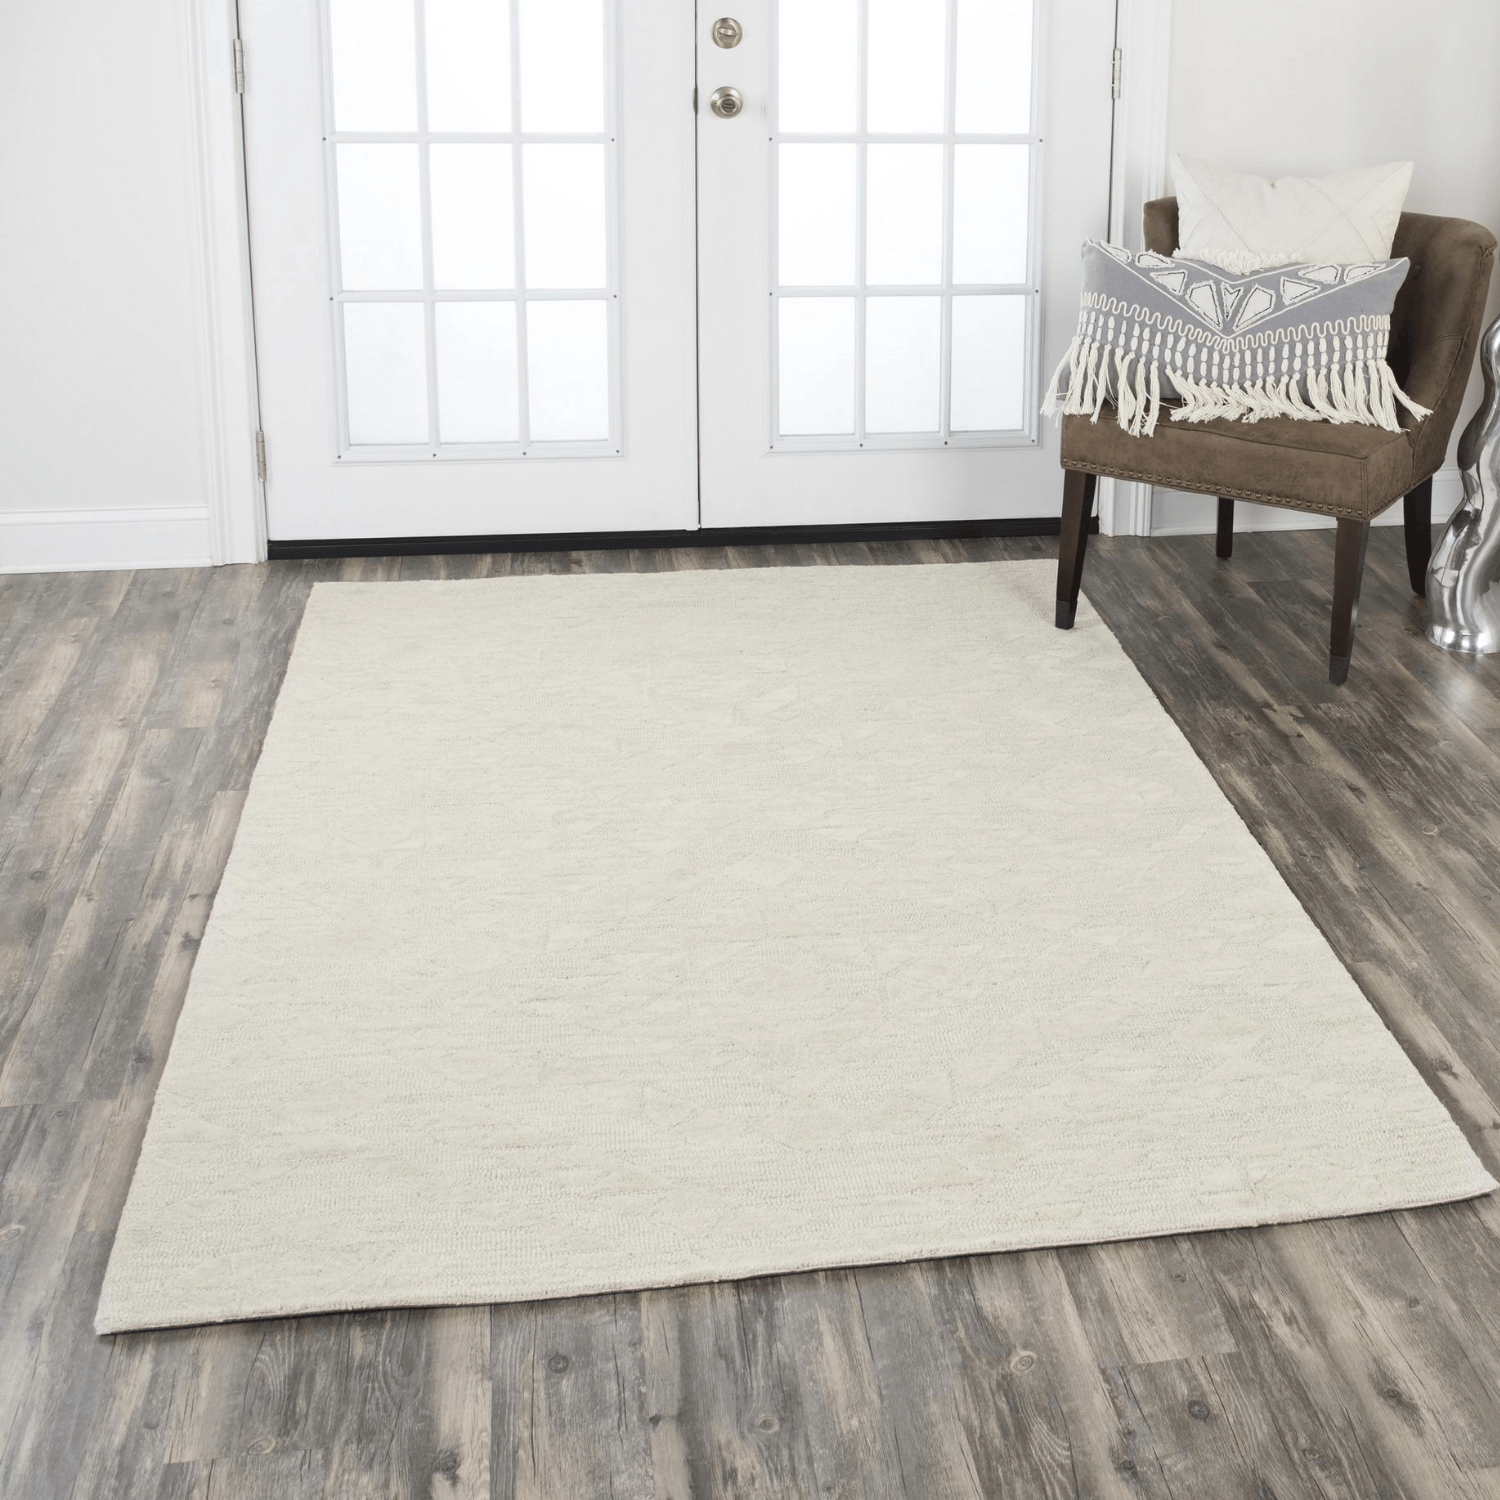 Fifth Avenue Rizzy Home FA167B Beige Wool Neutral Area Rug